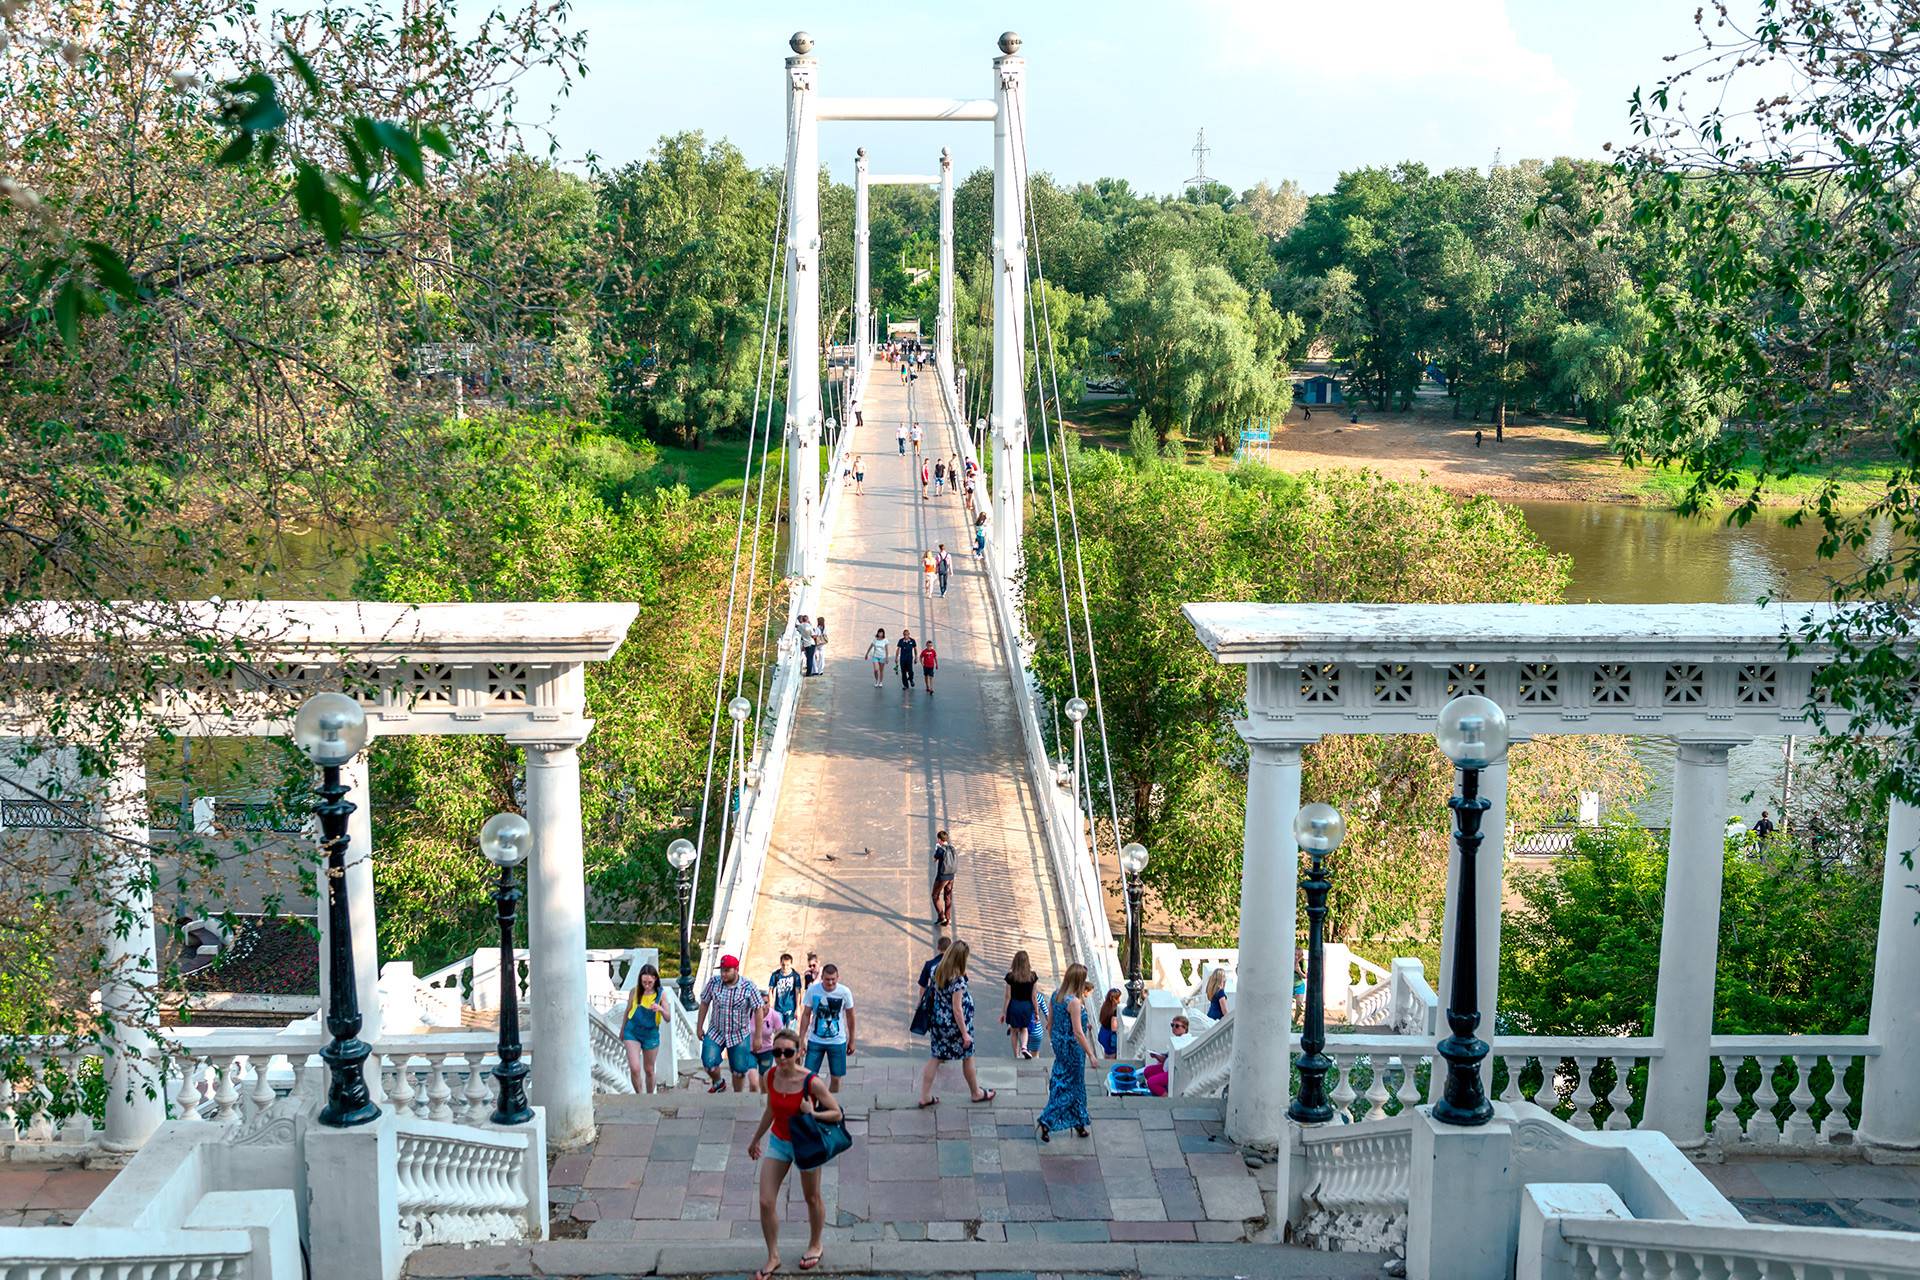 The pedestrian bridge over the Ural River in Orenburg.